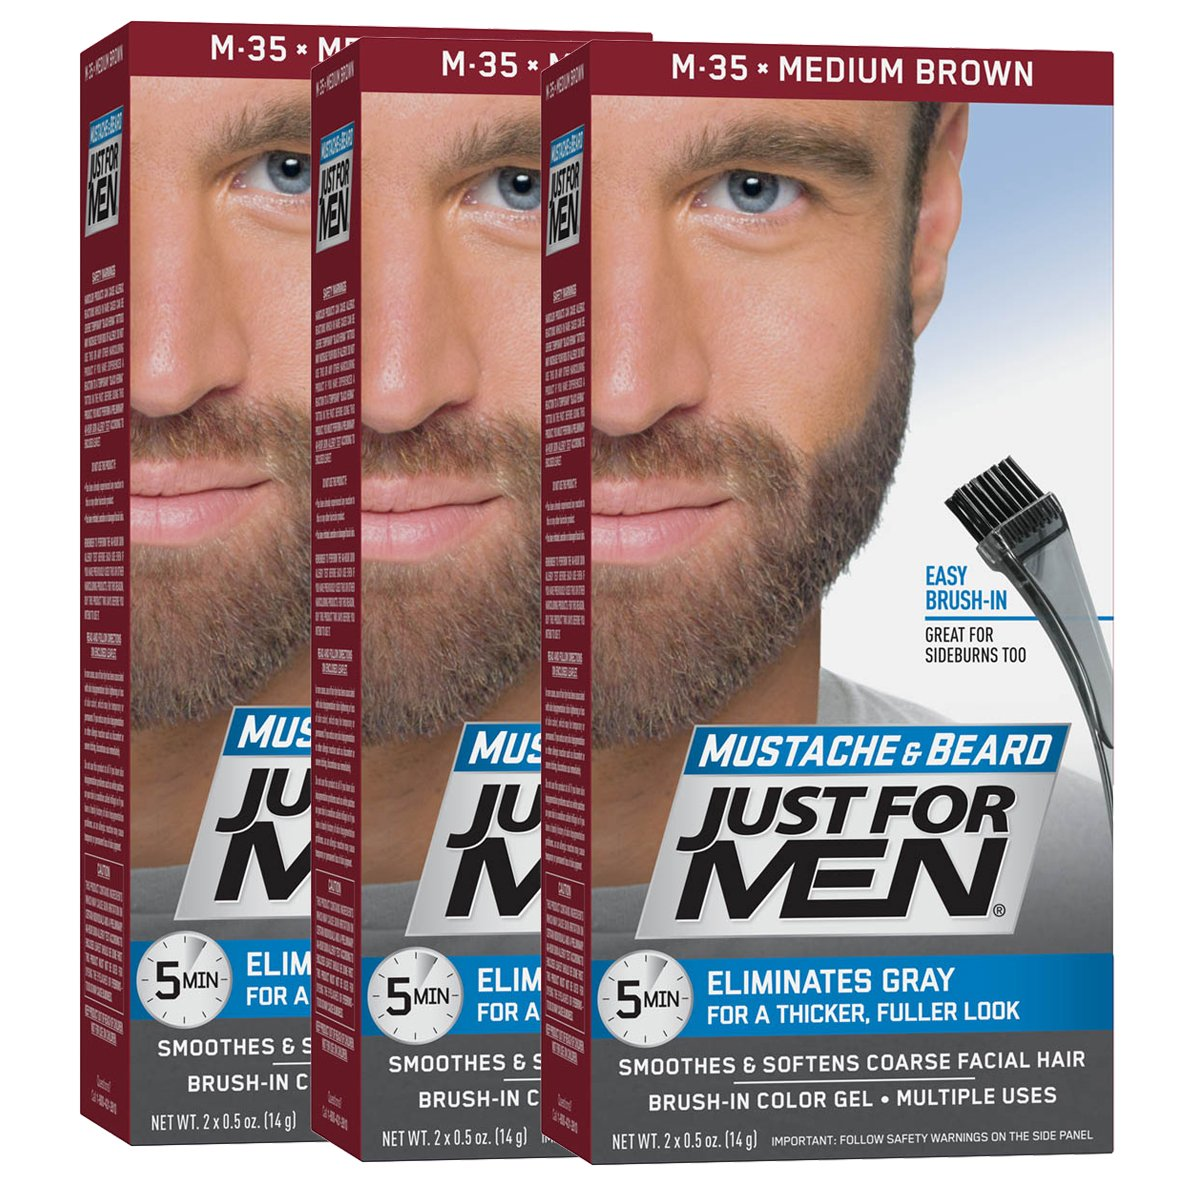 Just For Men Mustache & Beard Brush-In Color Gel, Medium Brown (Pack of 3) by Just for Men (Image #1)